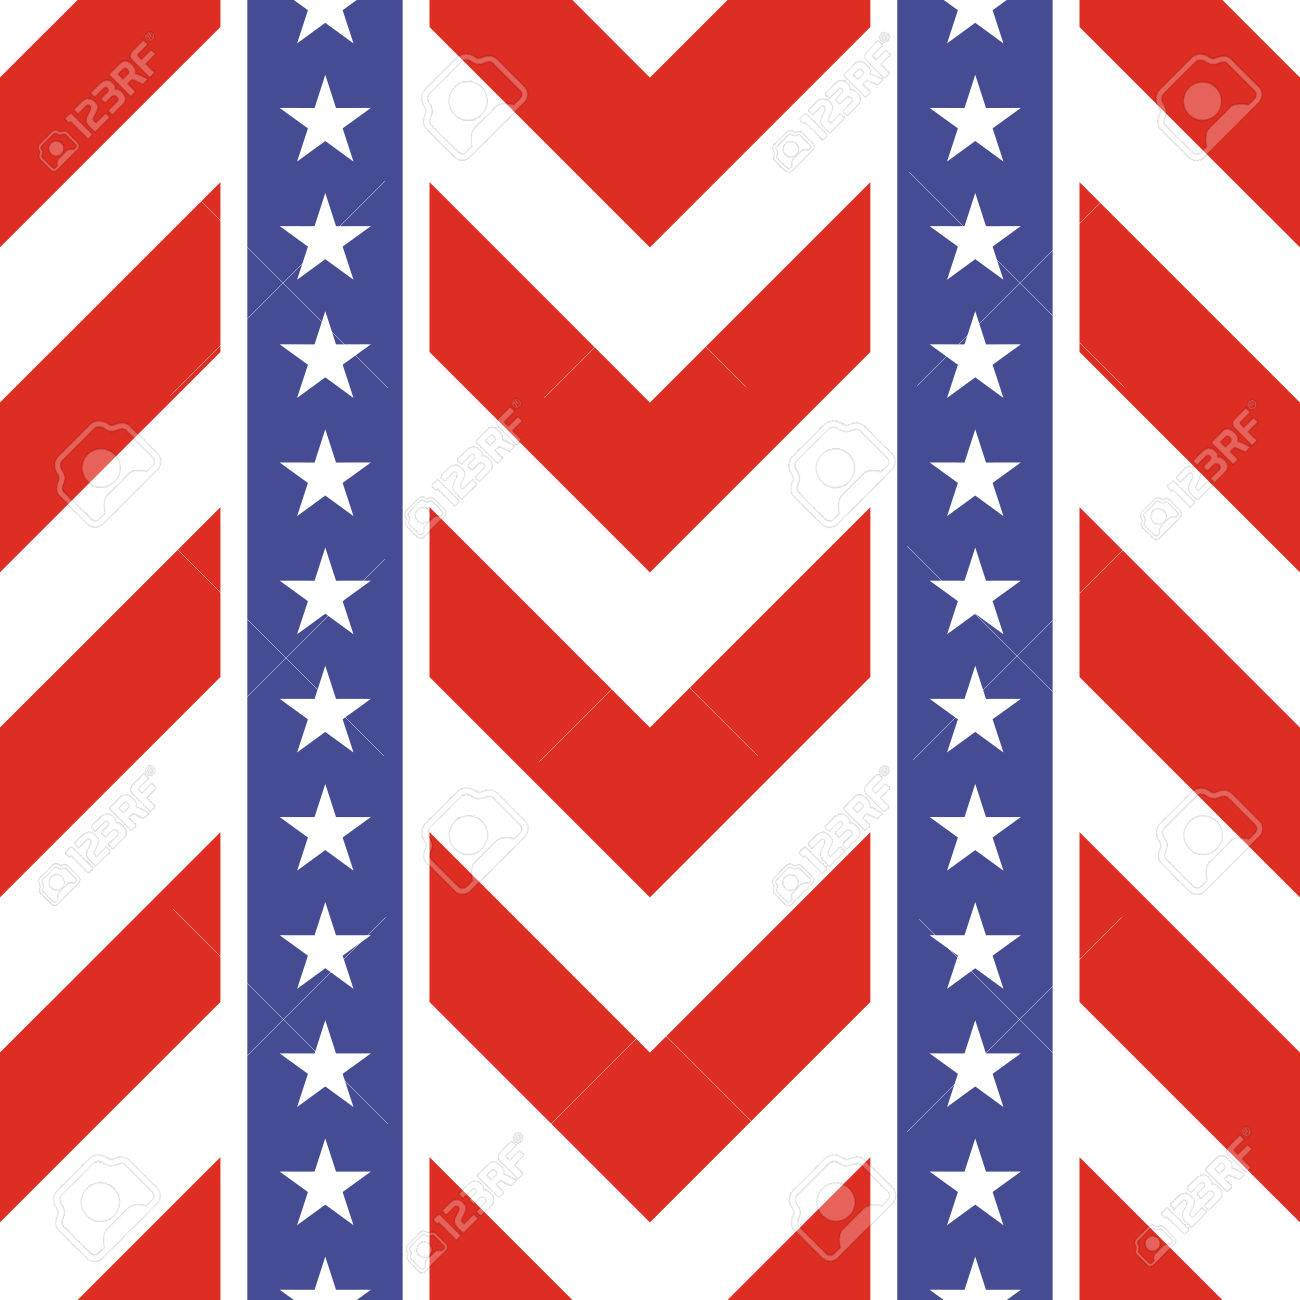 Patriotic usa seamless pattern american flag symbols and colors american flag symbols and colors background for 4th july usa biocorpaavc